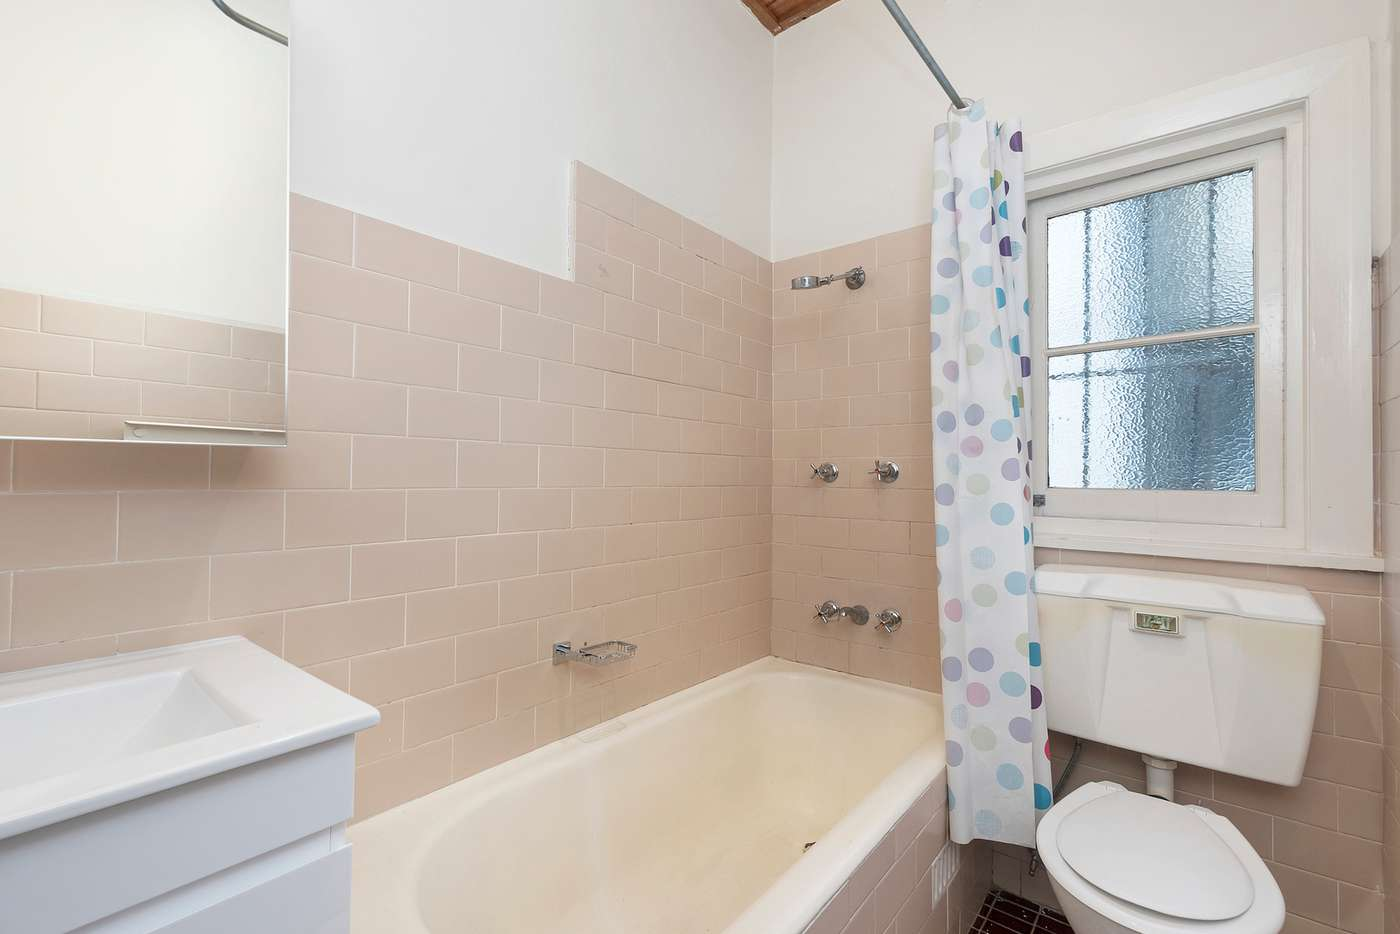 Sixth view of Homely unit listing, 4/413 Glebe Point Road, Glebe NSW 2037